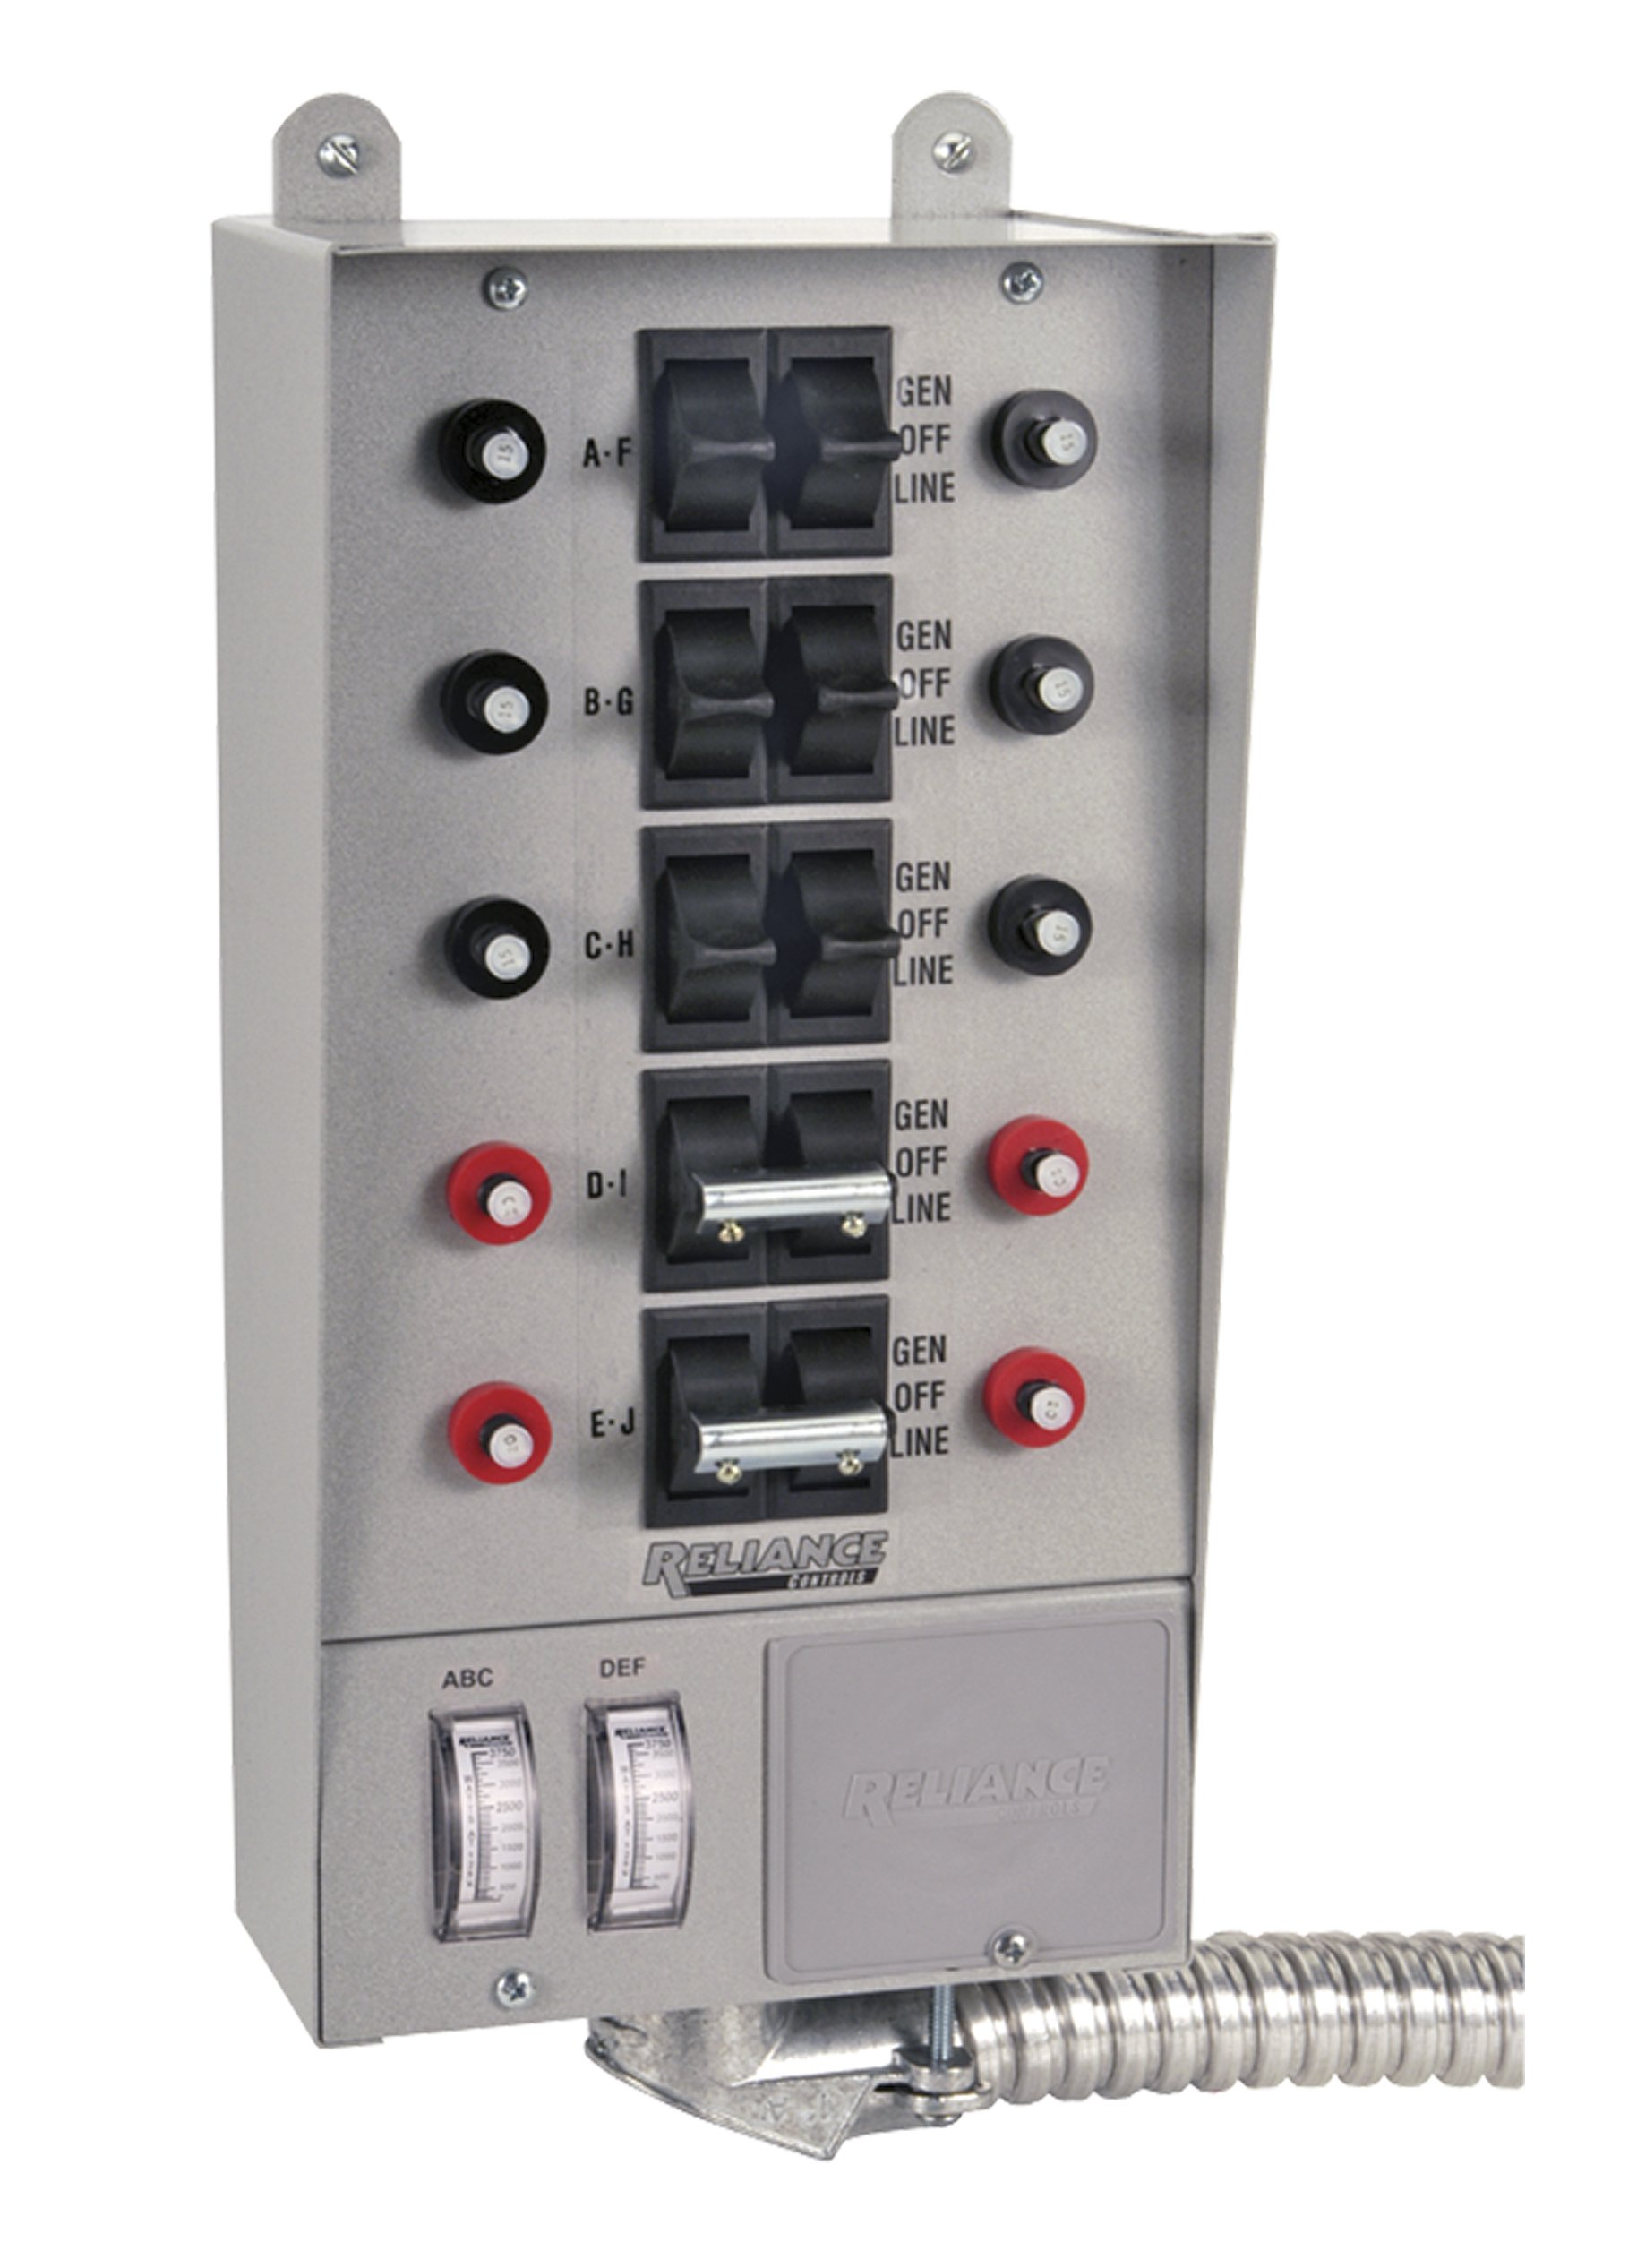 Reliance Controls Corporation 51410C Pro/Tran 10-Circuit Indoor Transfer Switch for Generators Up to 12,500 Running Watts by Reliance Controls